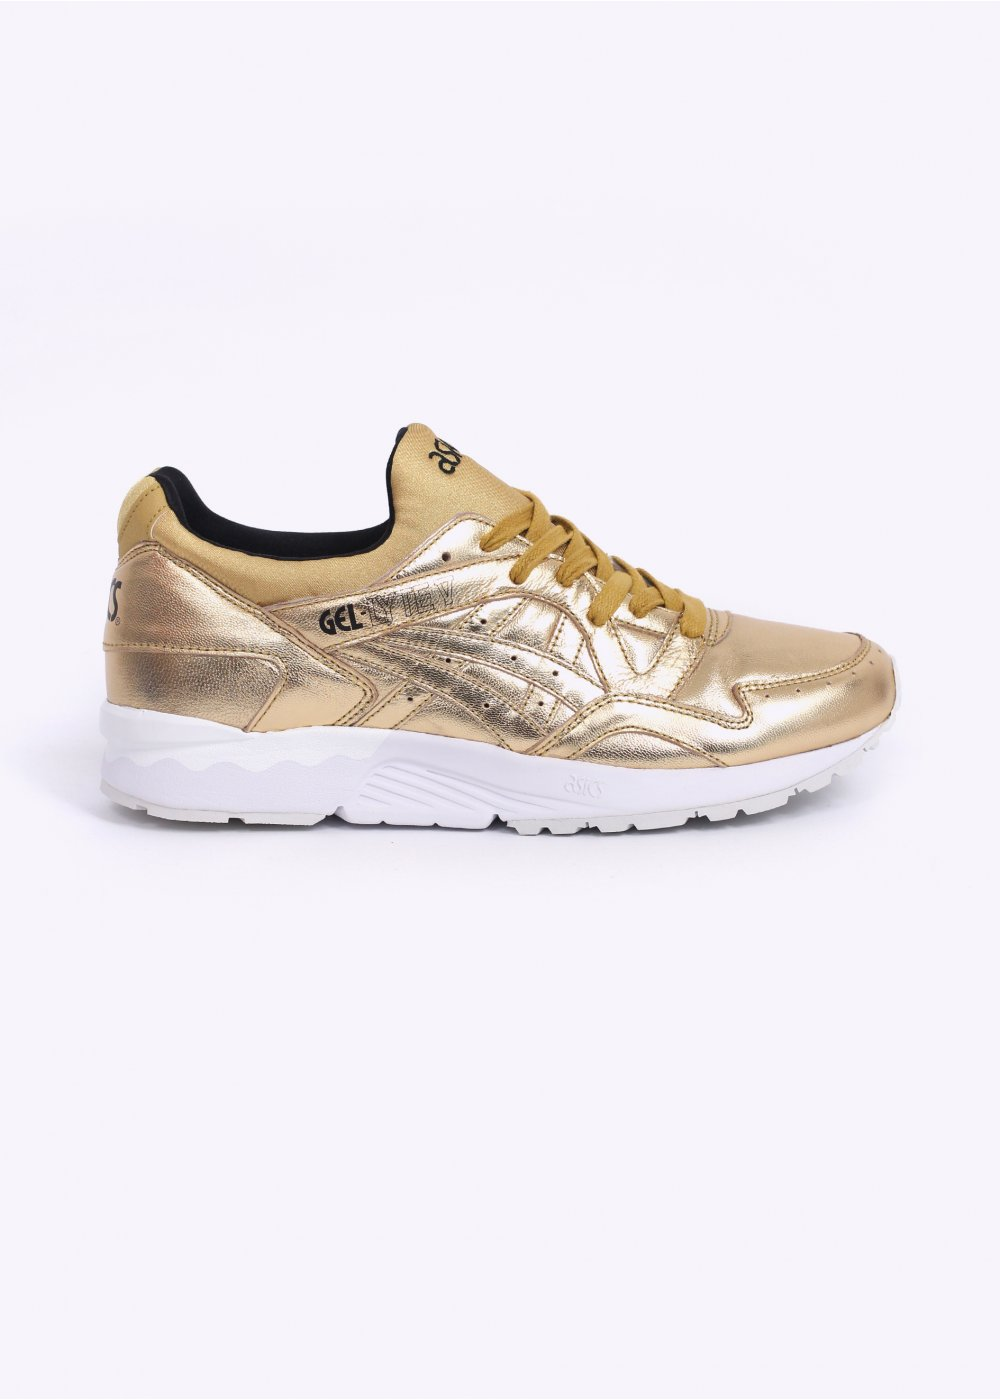 check out fac8a 9d598 Gel-Lyte V Trainers Holiday Pack - Gold